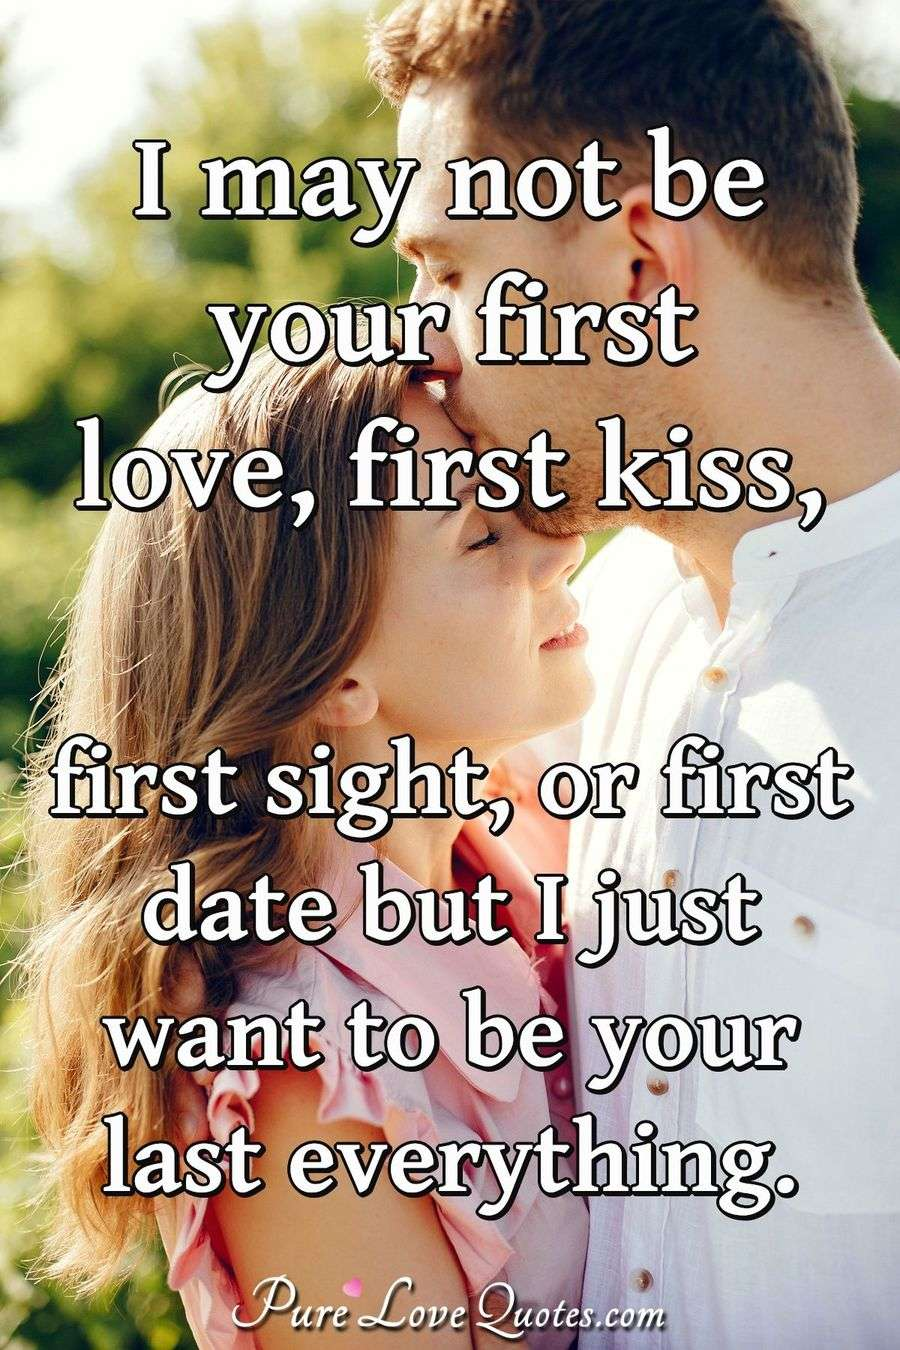 When to have your first kiss when dating